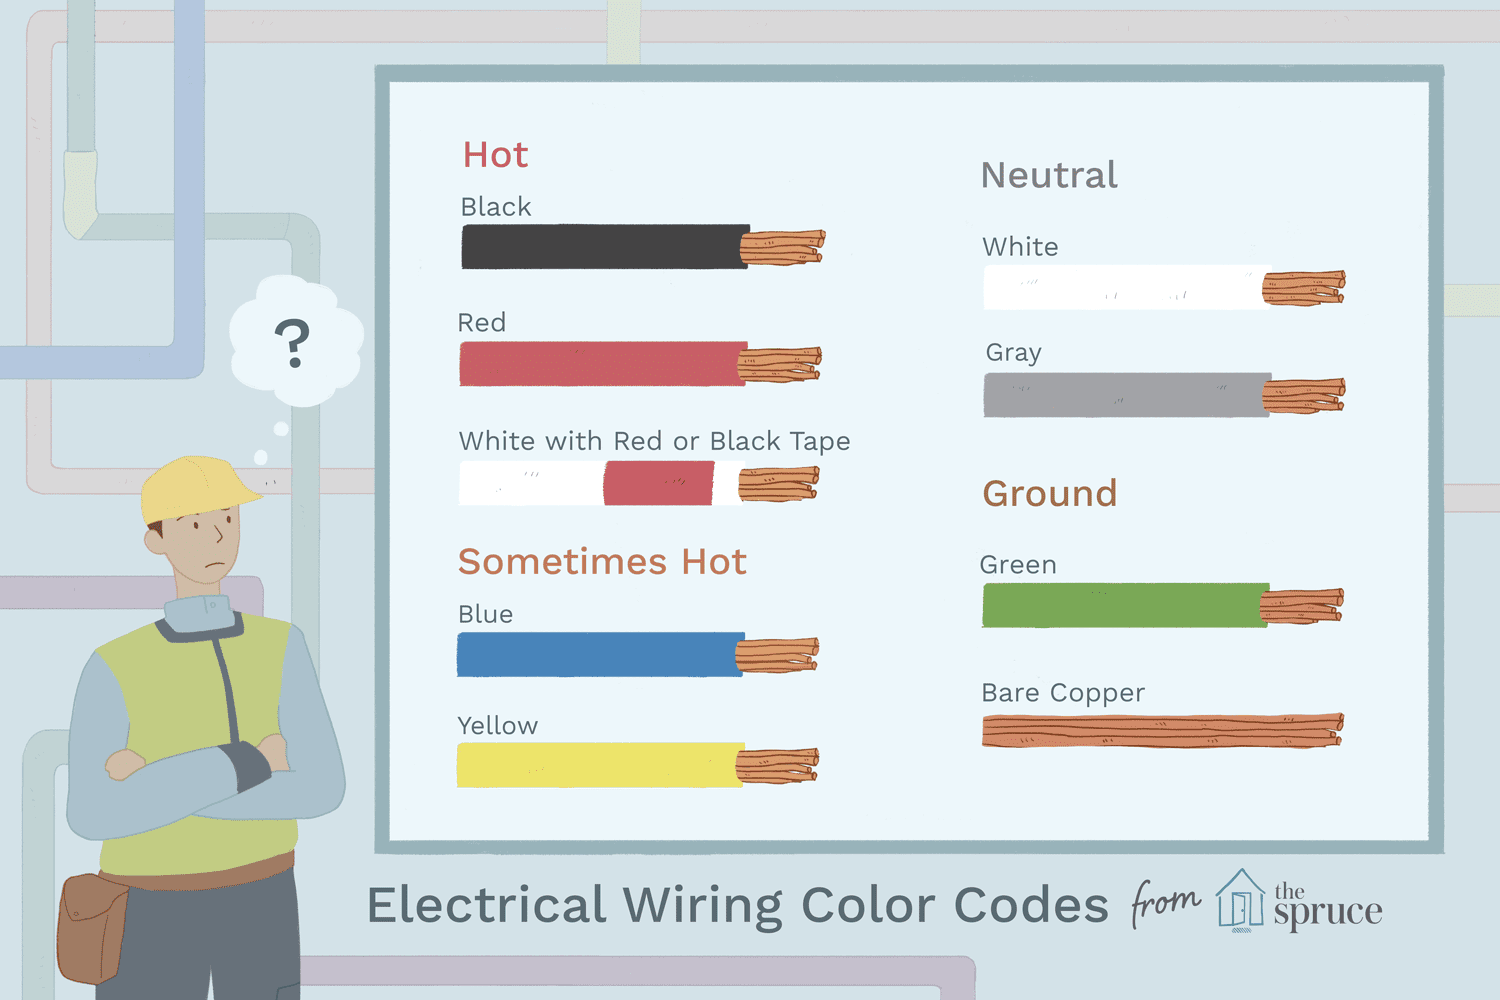 Electrical Wiring Color Coding System Copper Wire Bare Solid And